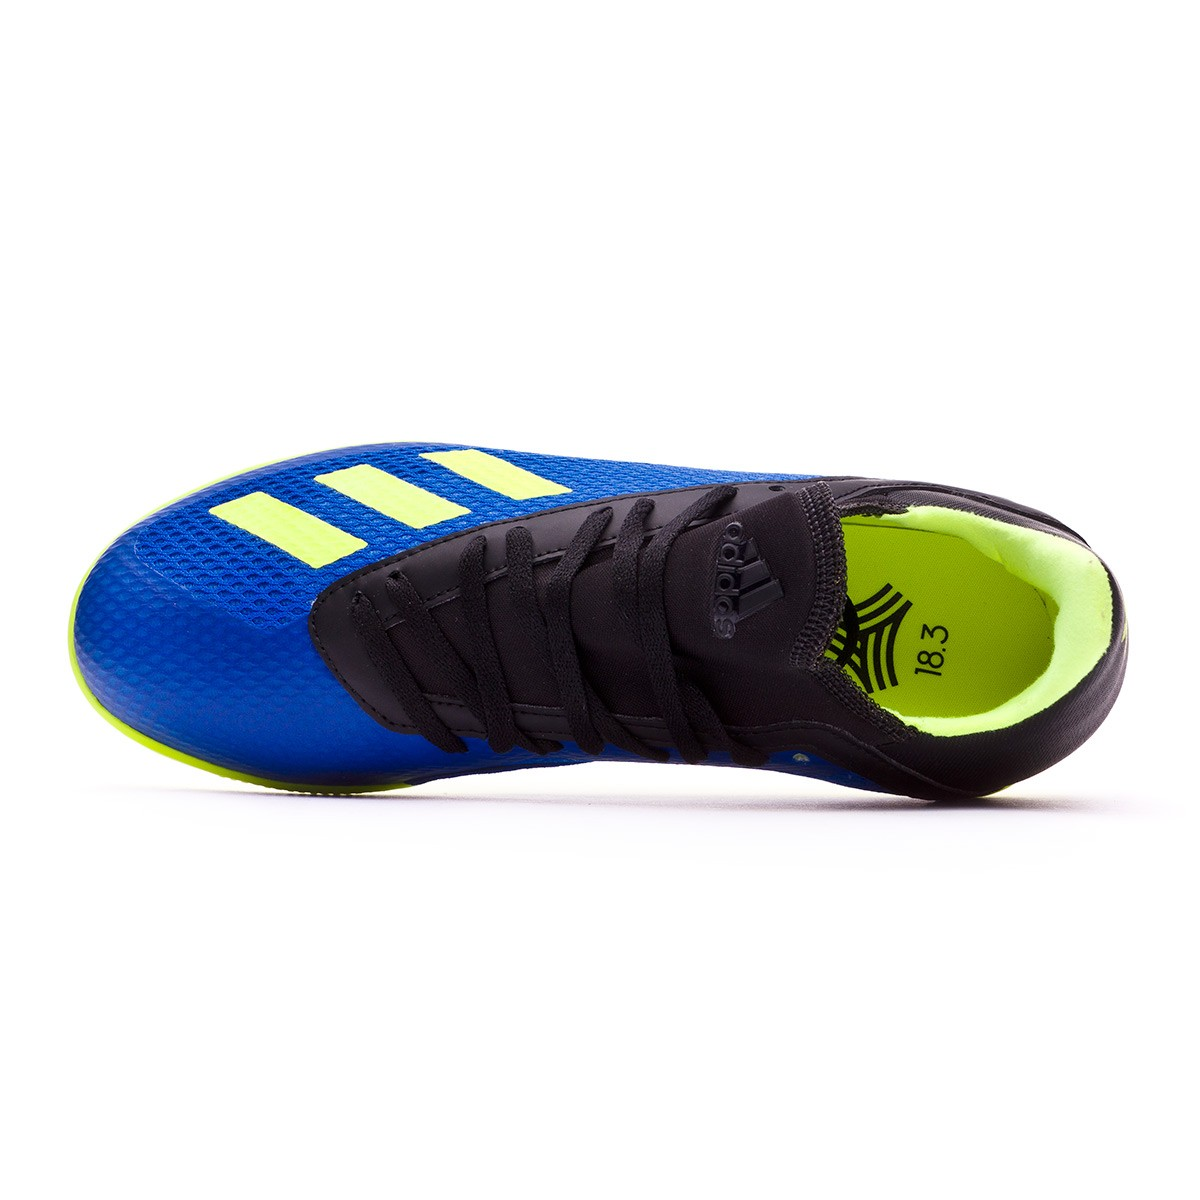 9359f15fad1 Futsal Boot adidas Kids X Tango 18.3 IN Foot blue-Solar yellow-Black -  Football store Fútbol Emotion